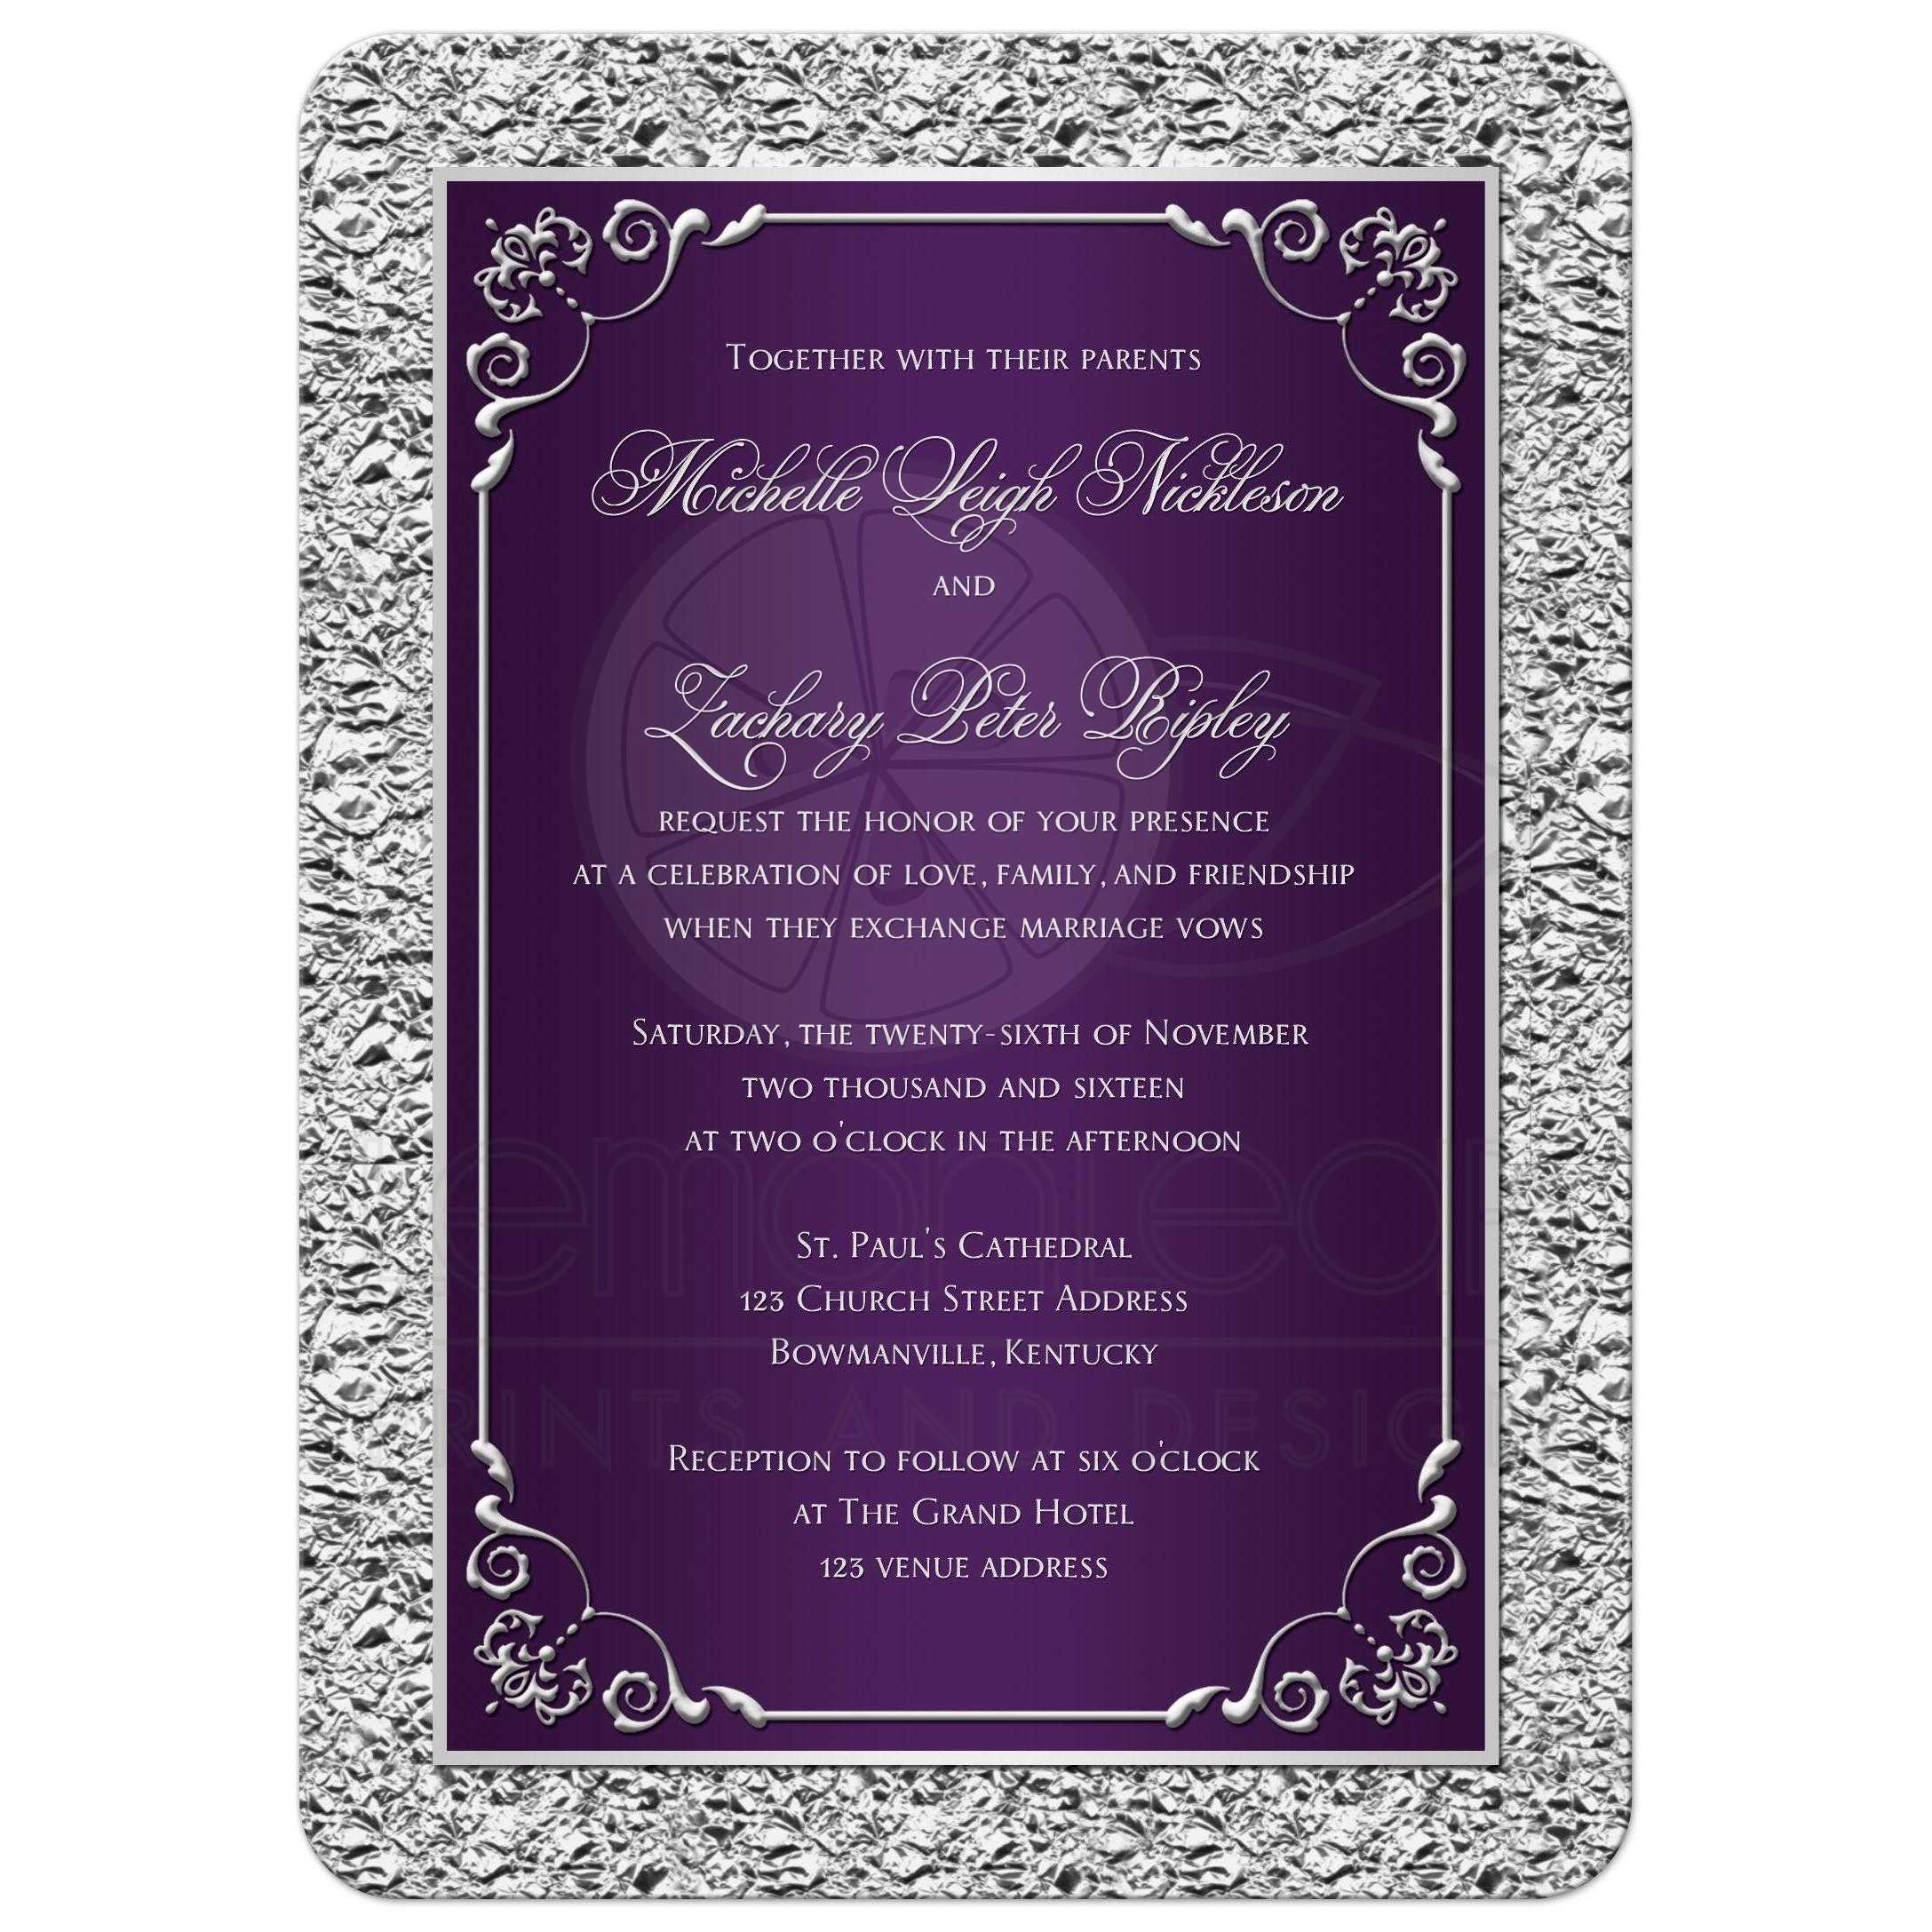 Wedding invitation purple silver scrolls faux silver foil purple and silver gray wedding invitation with ornate scrolls junglespirit Image collections